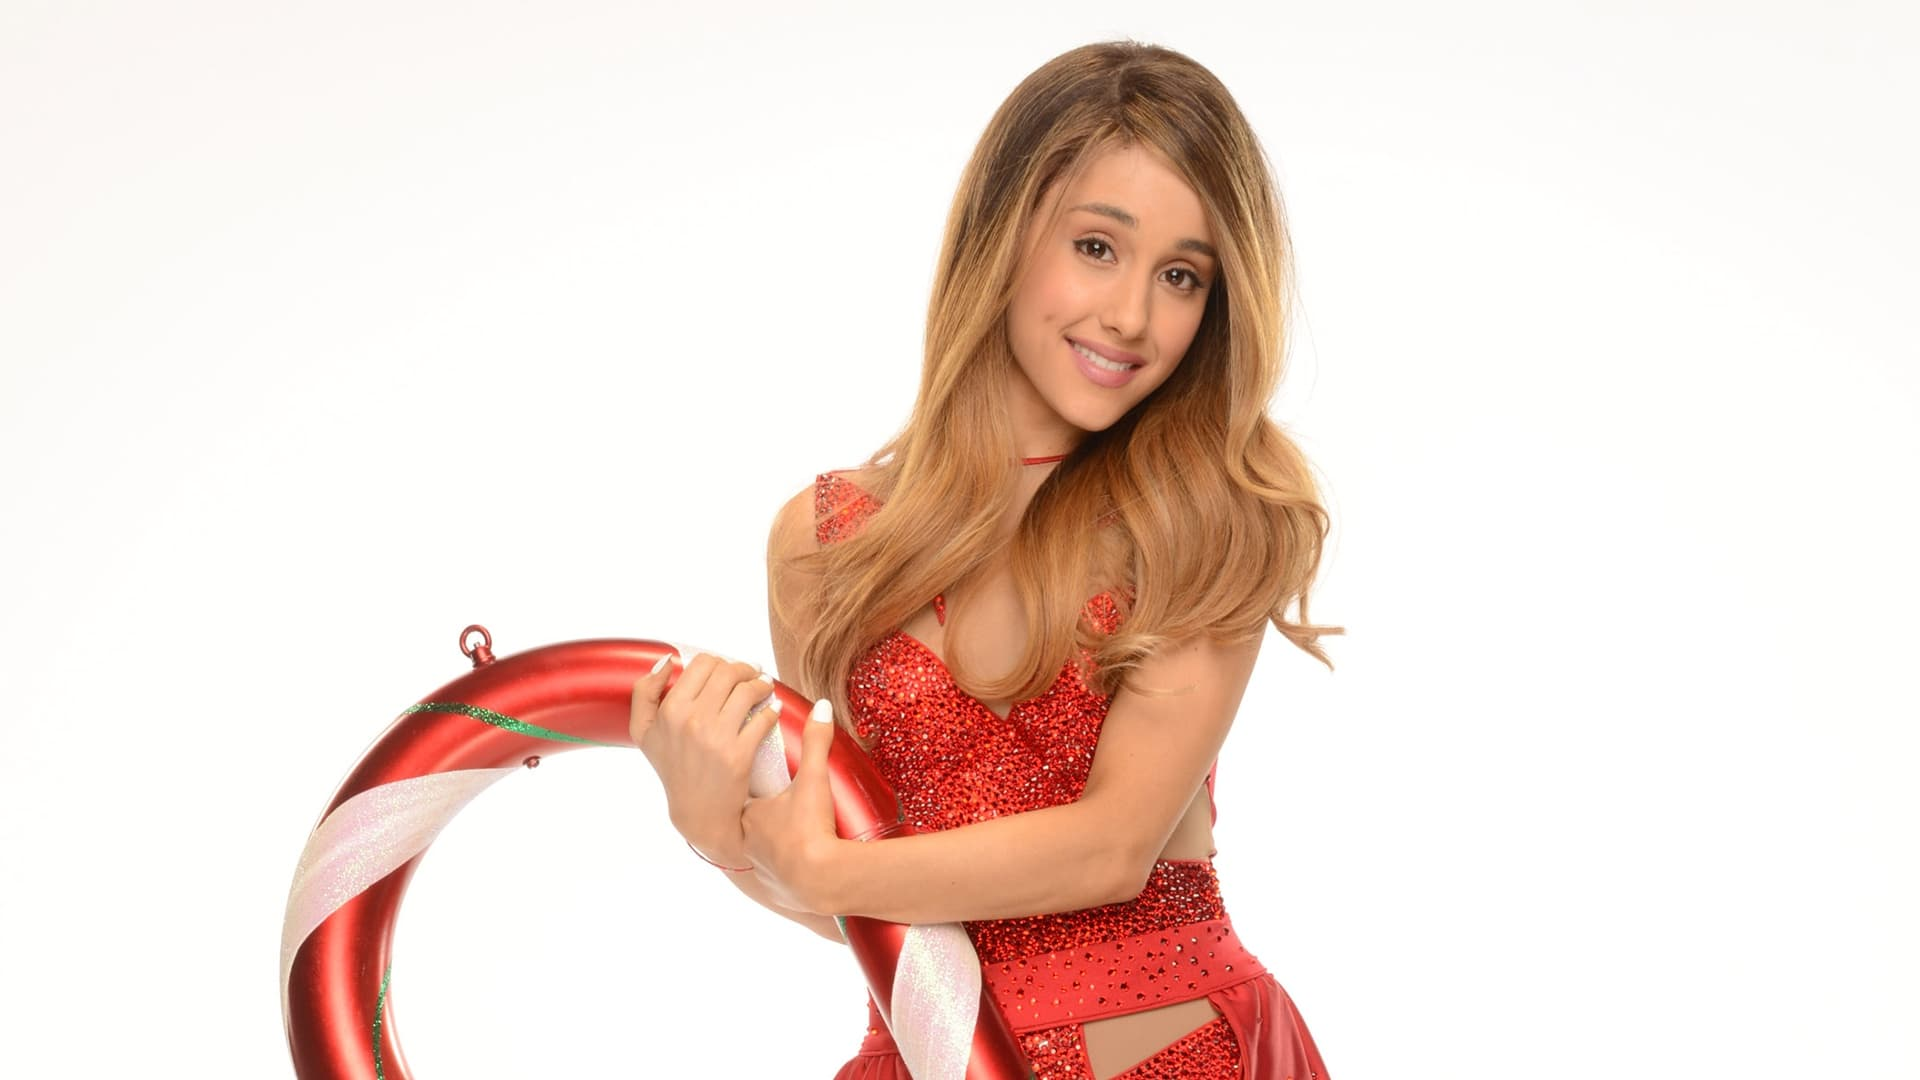 25 Ariana Grande Wallpapers High Quality Download